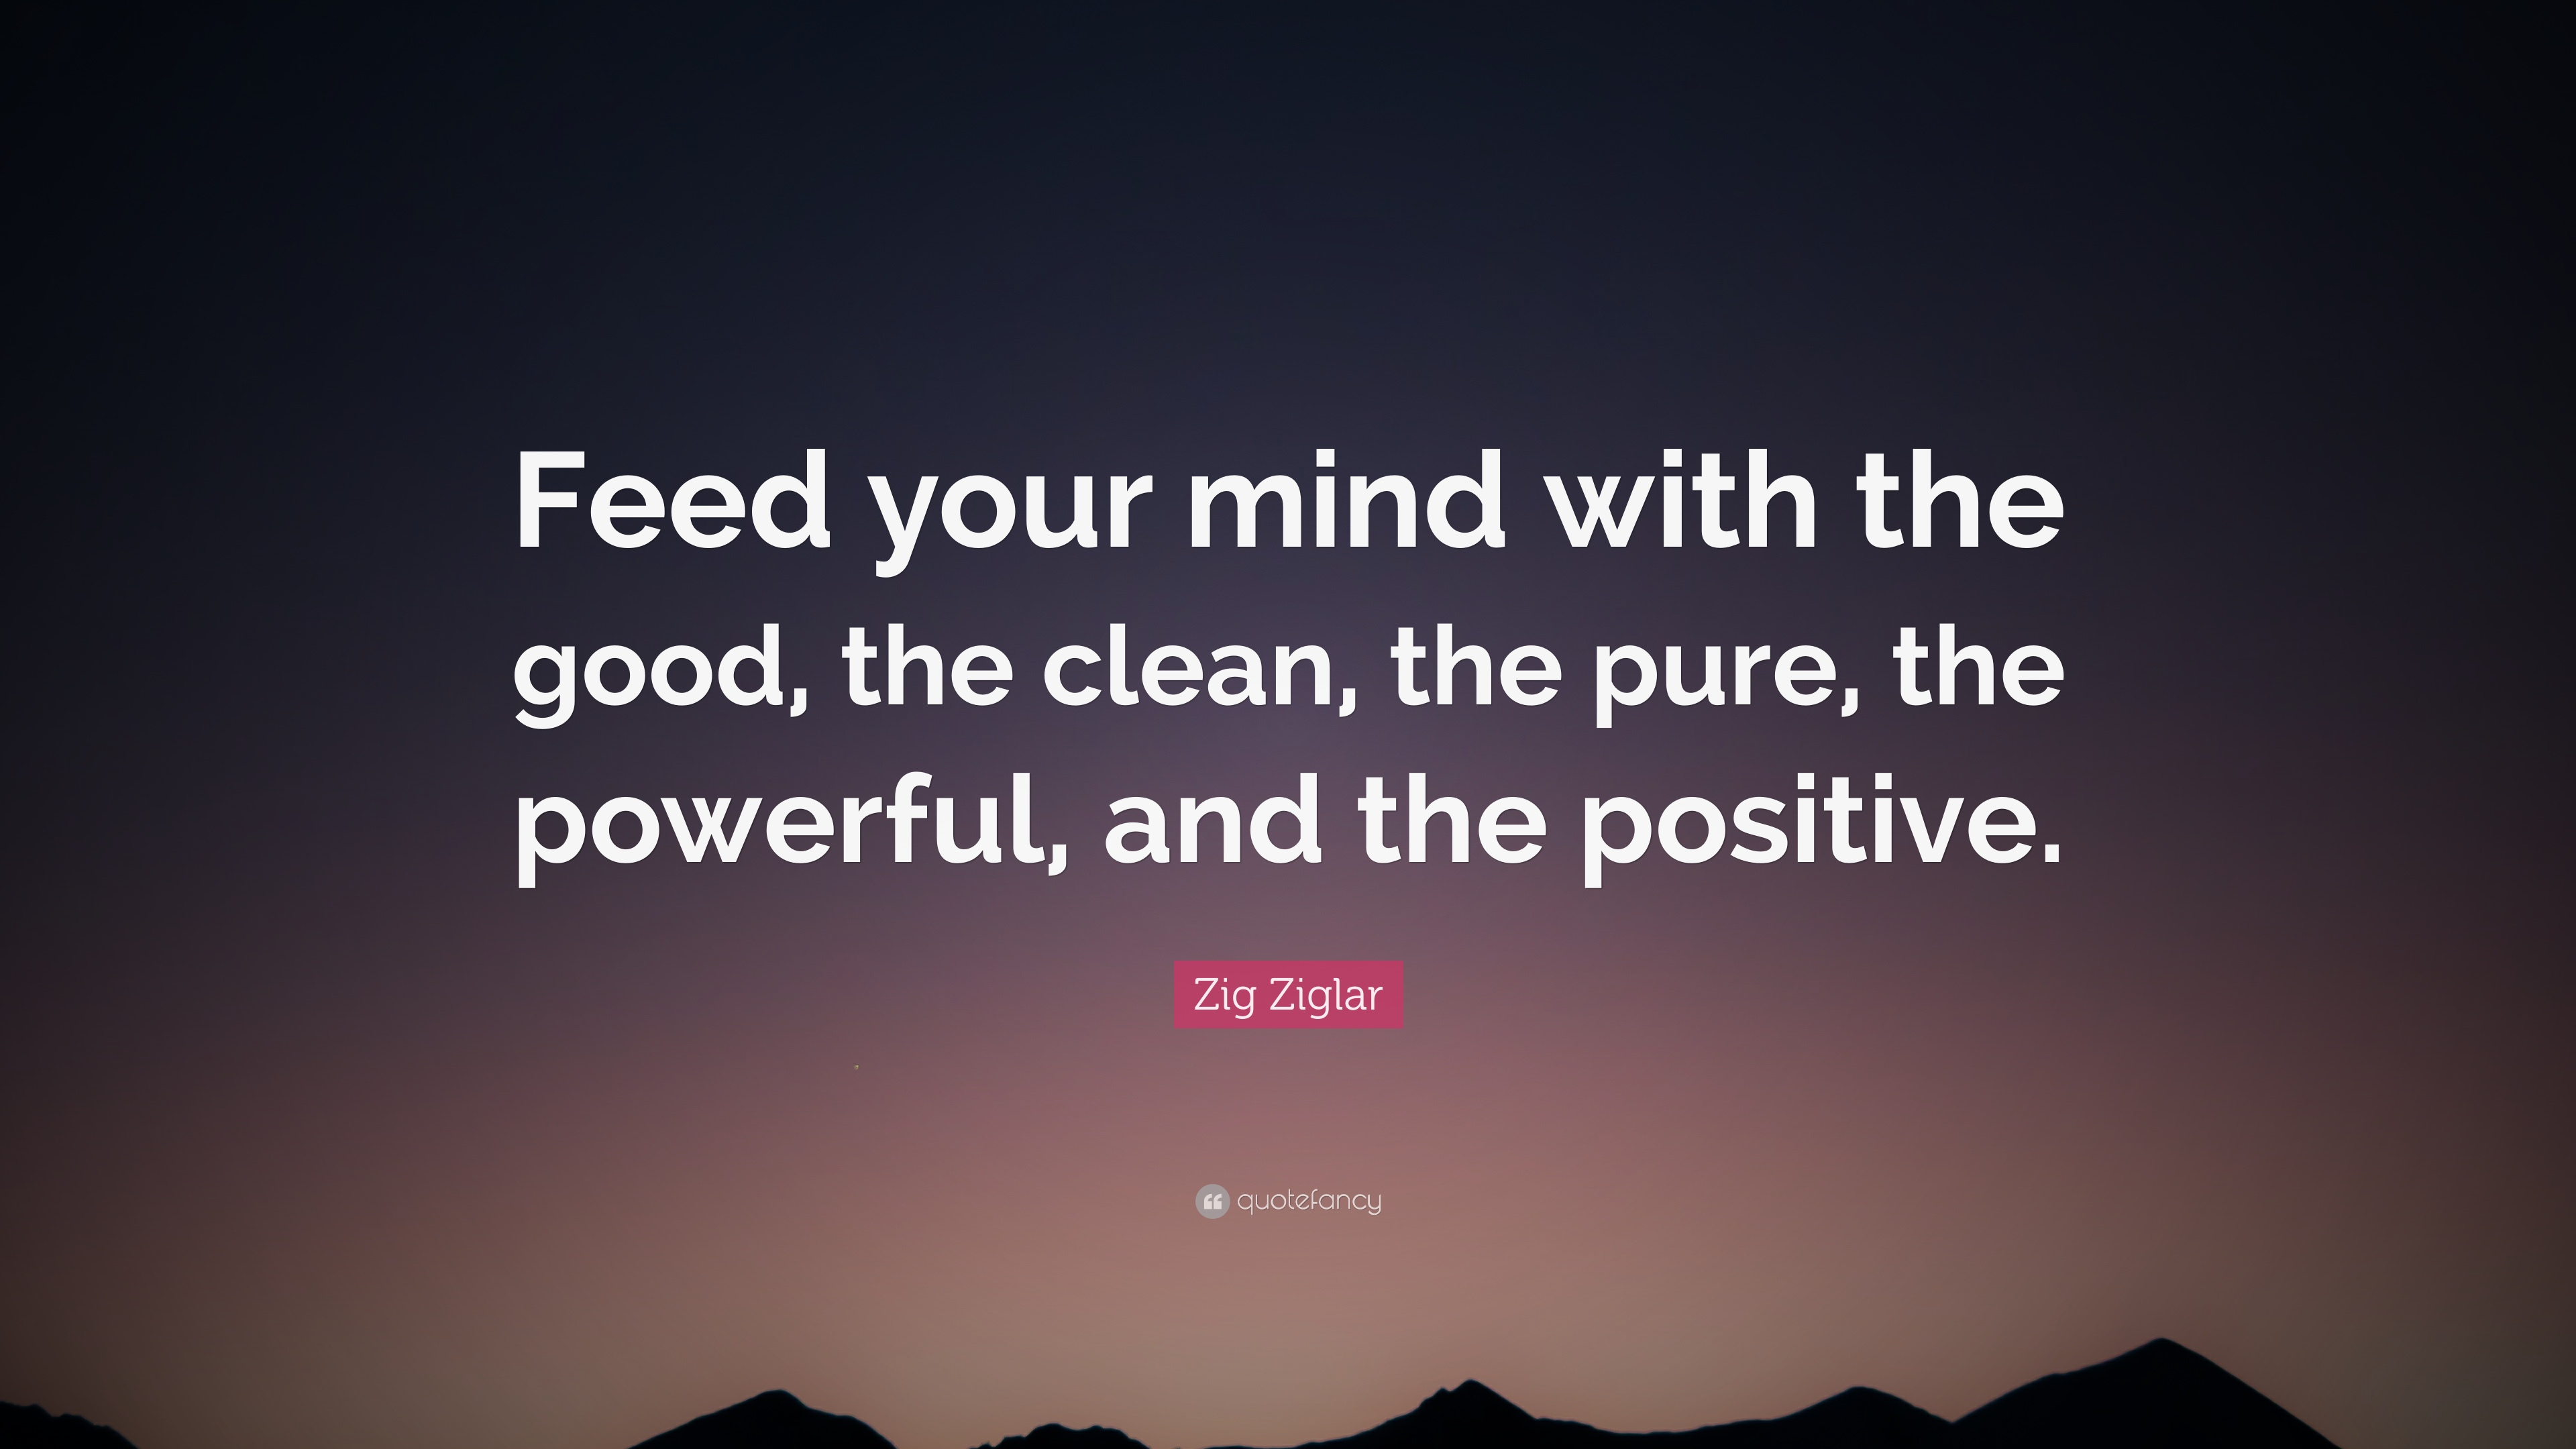 Zig Ziglar Quote Feed Your Mind With The Good The Clean The Pure